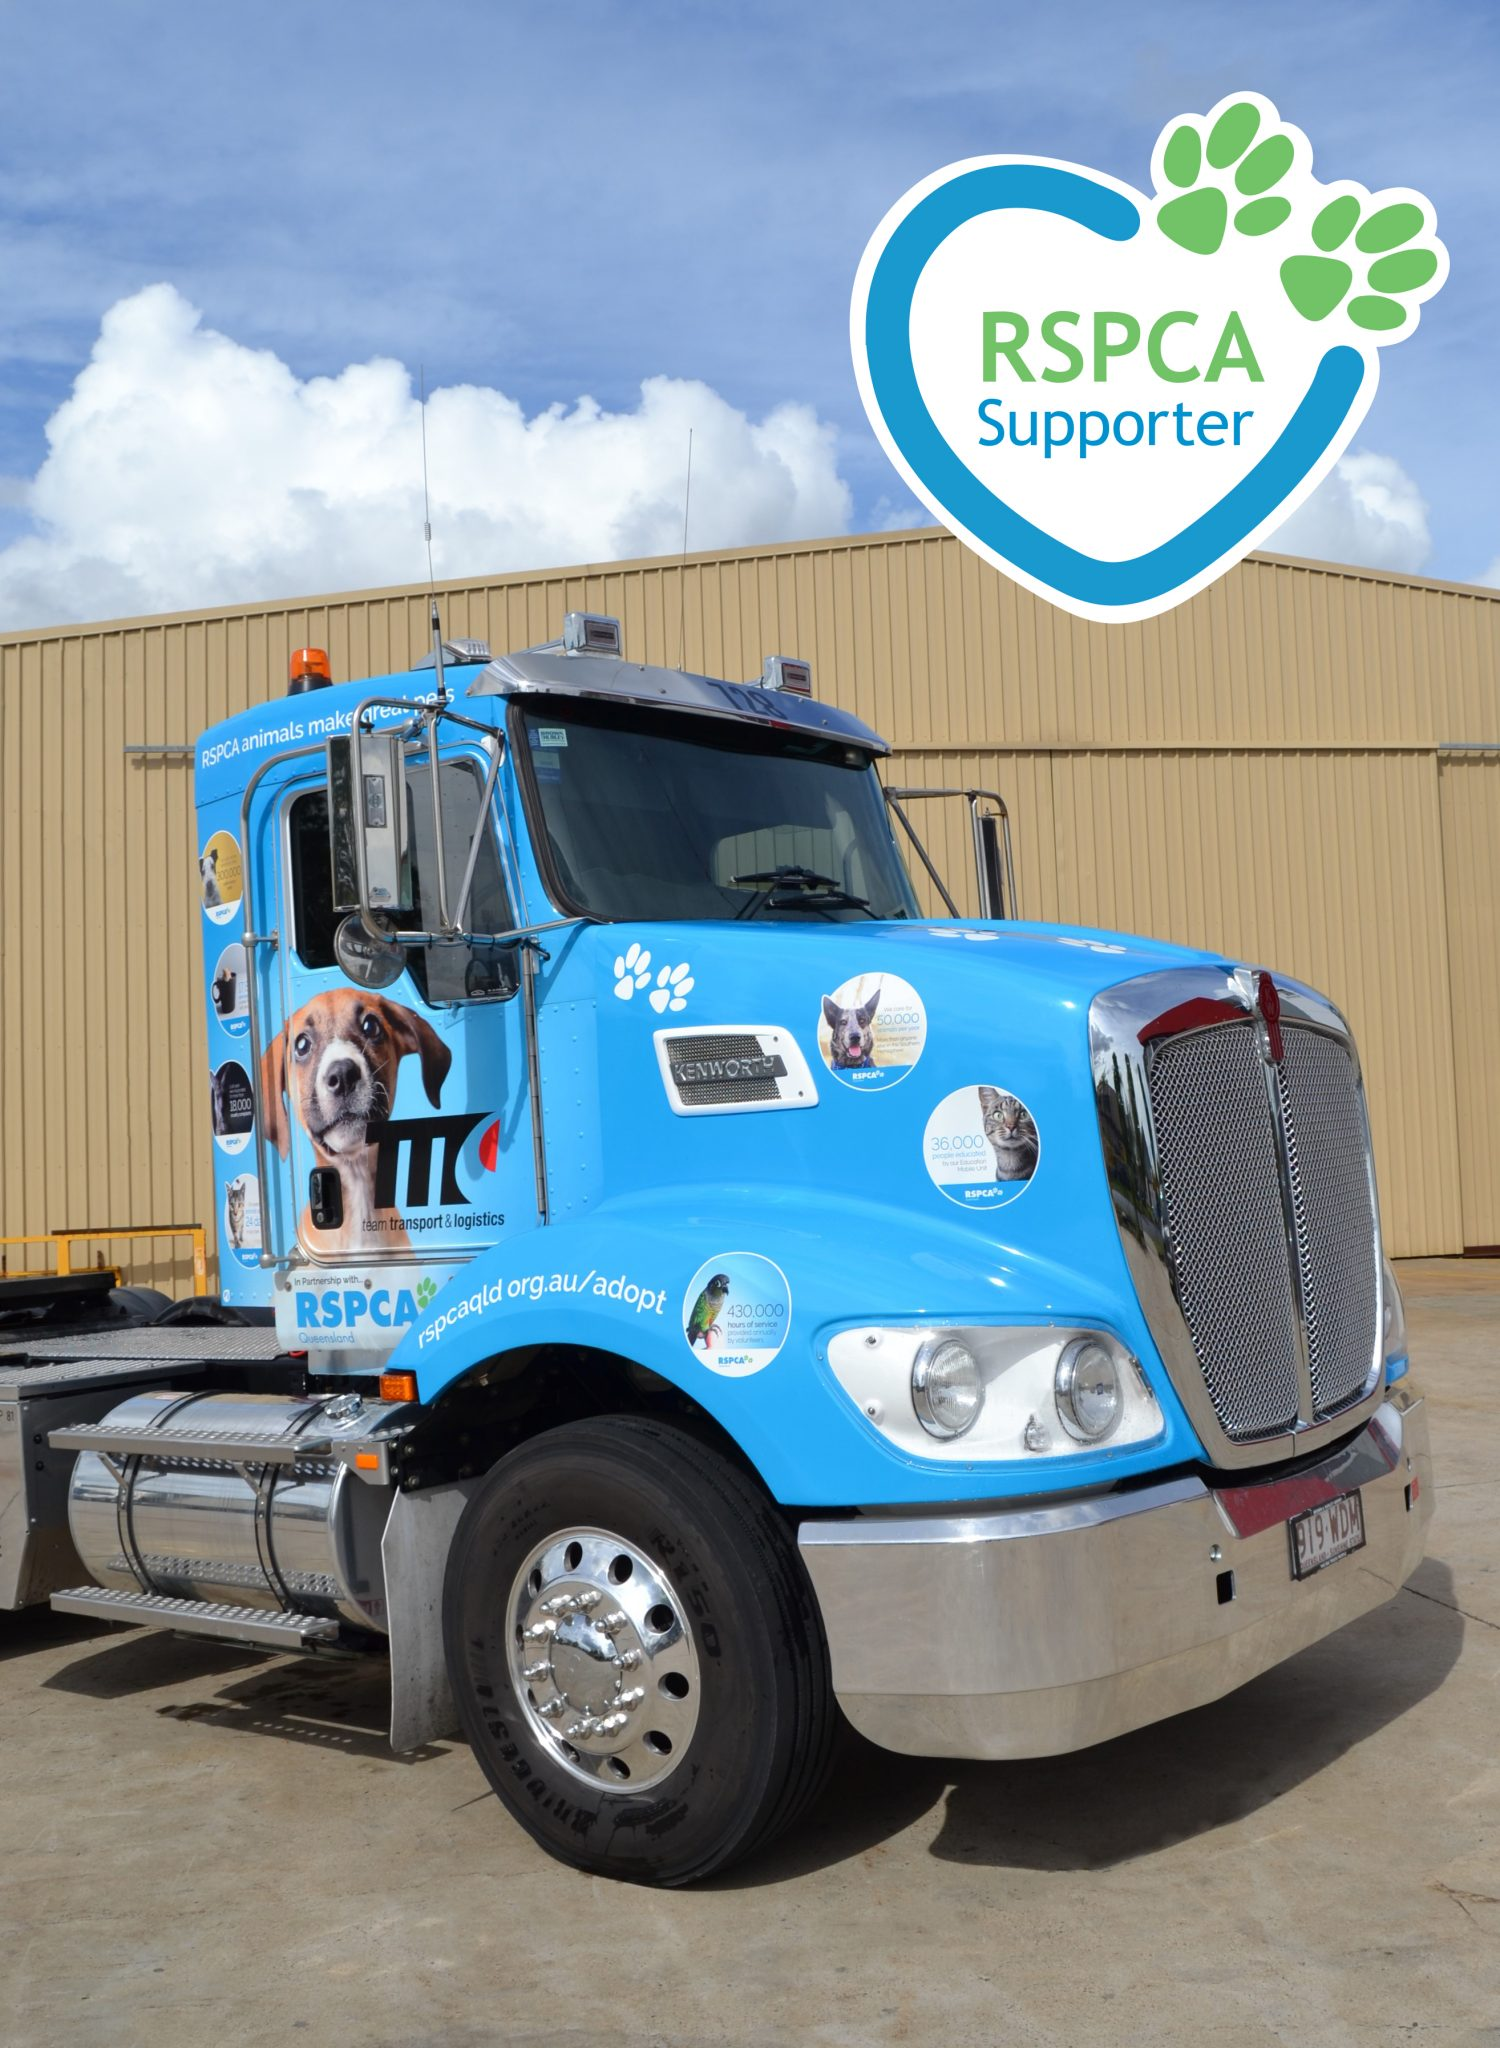 Team Transport & Logistics Supports RSPCA Qld in Partnership